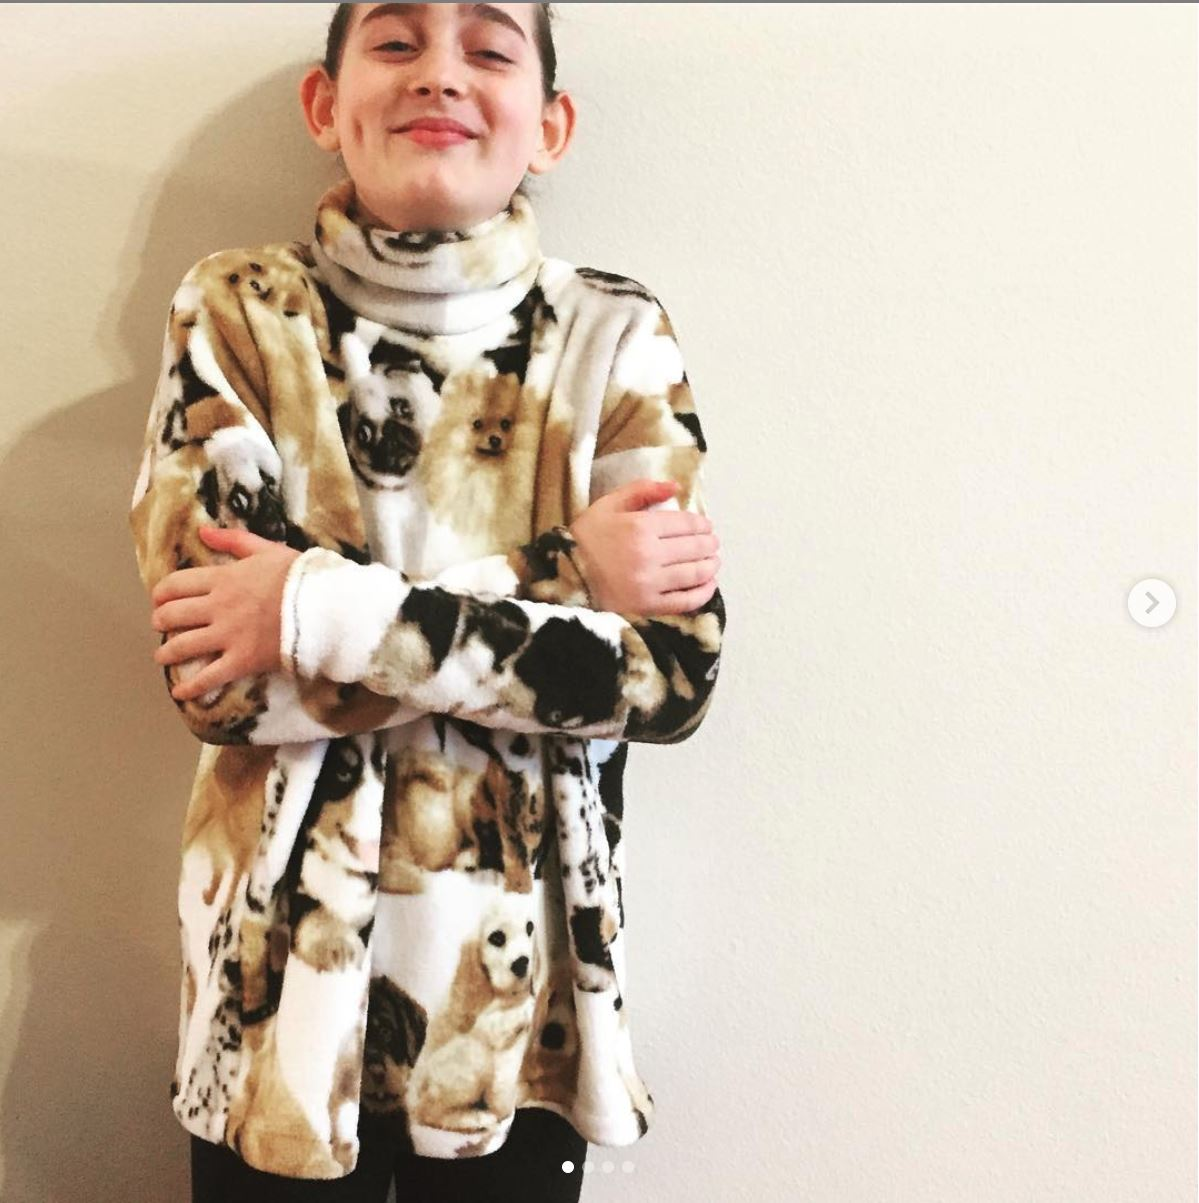 Child wearing minky fleece cowl or turtleneck jumper with printed dogs on